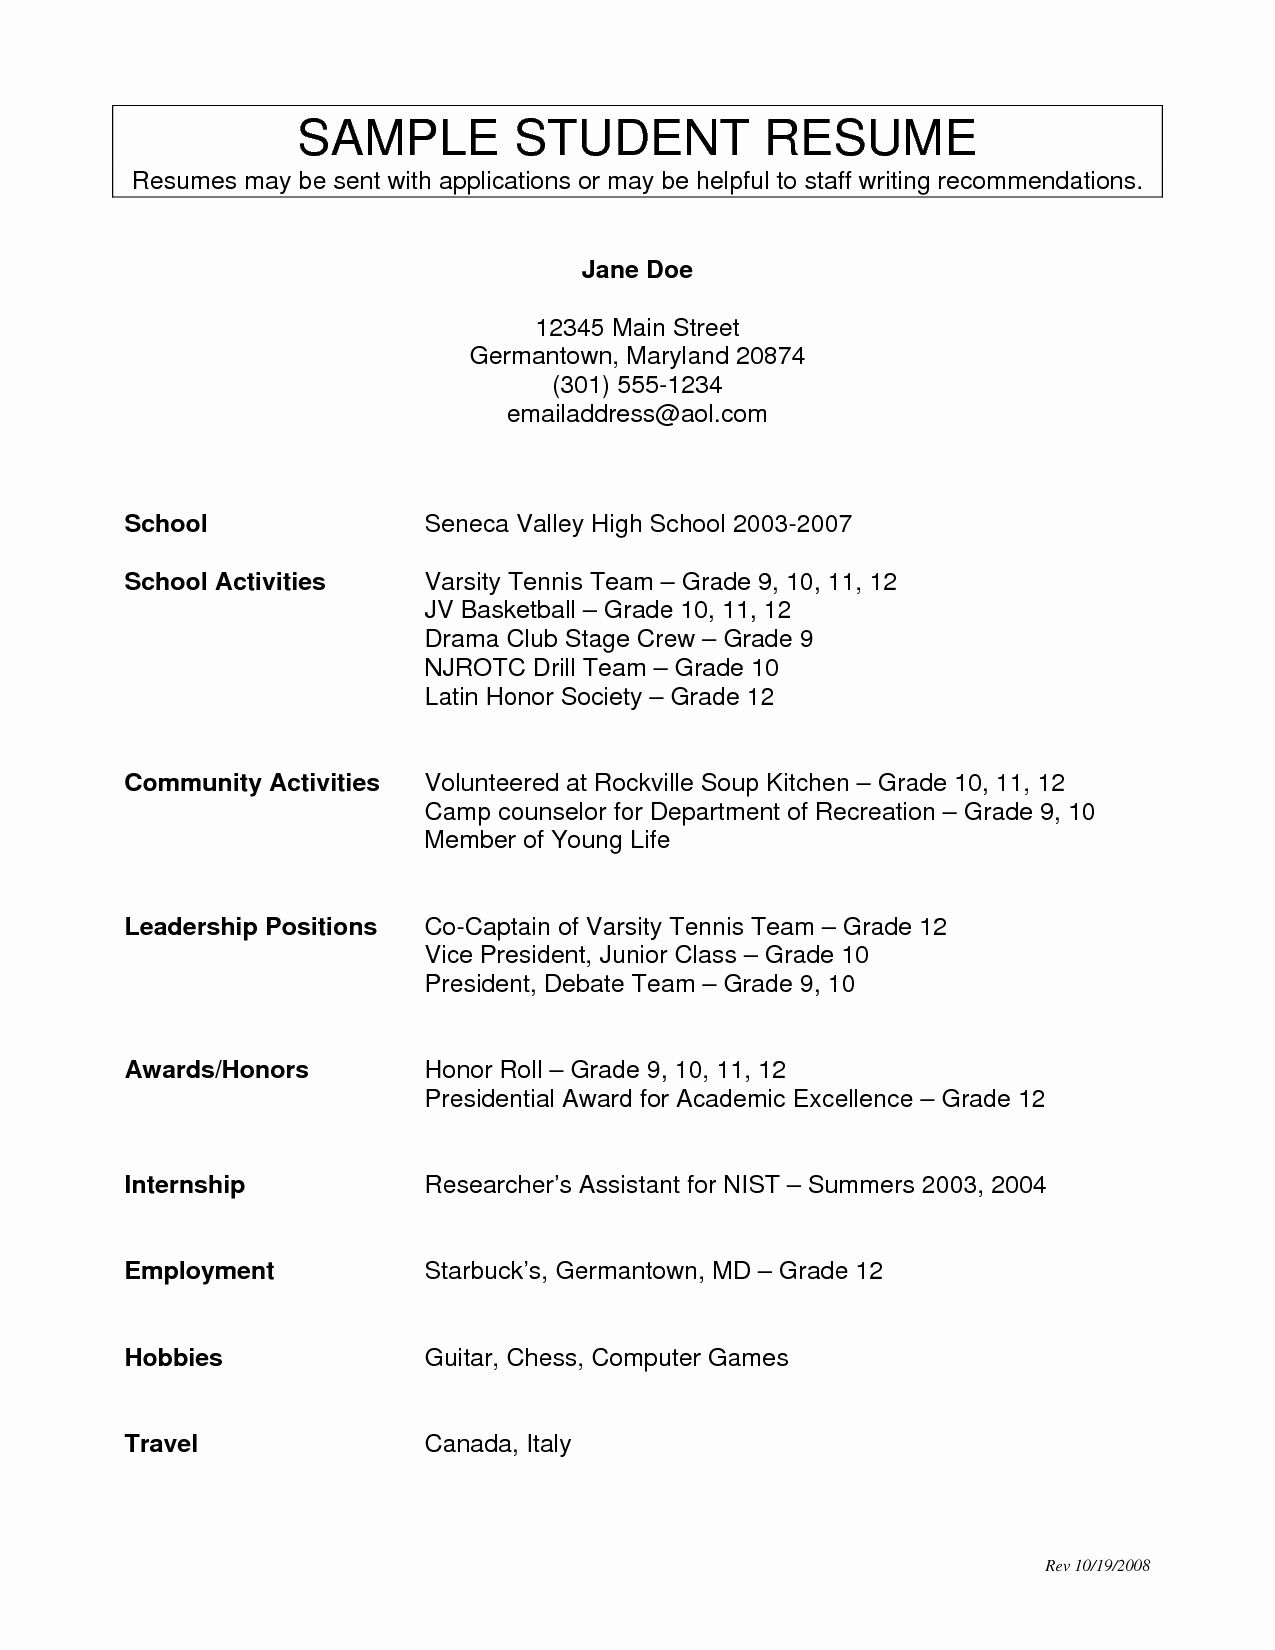 Resume Examples Me Nbspthis Website Is For Sale Nbspresume Examples Resources And Information Student Resume Student Resume Template Resume Examples